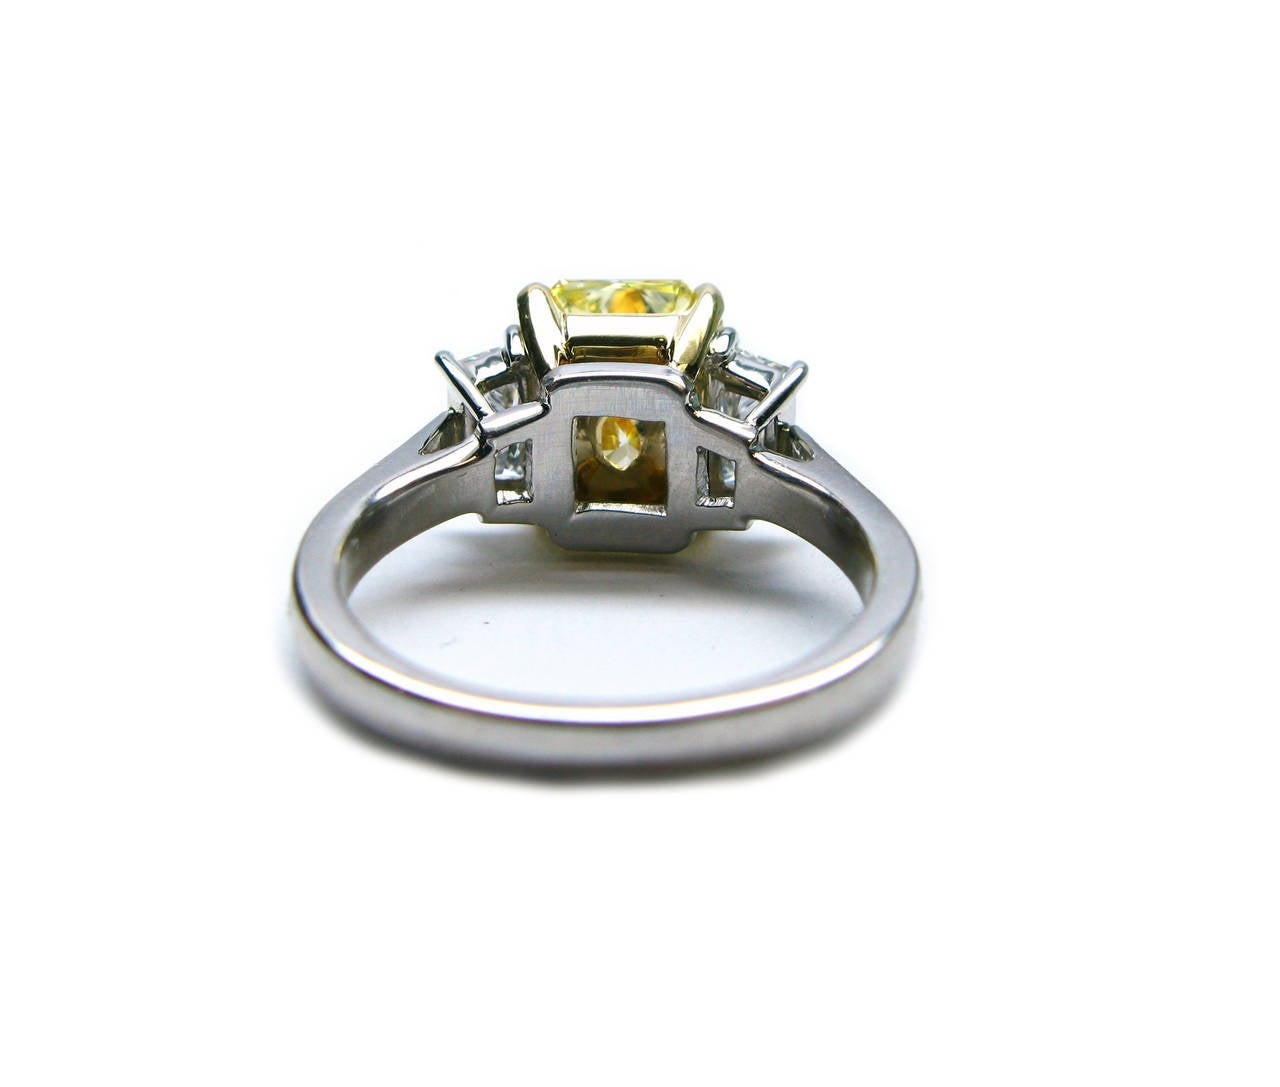 2.96 Carat Fancy Intense Yellow Radiant GIA Cert Diamond Gold Platinum Ring 4